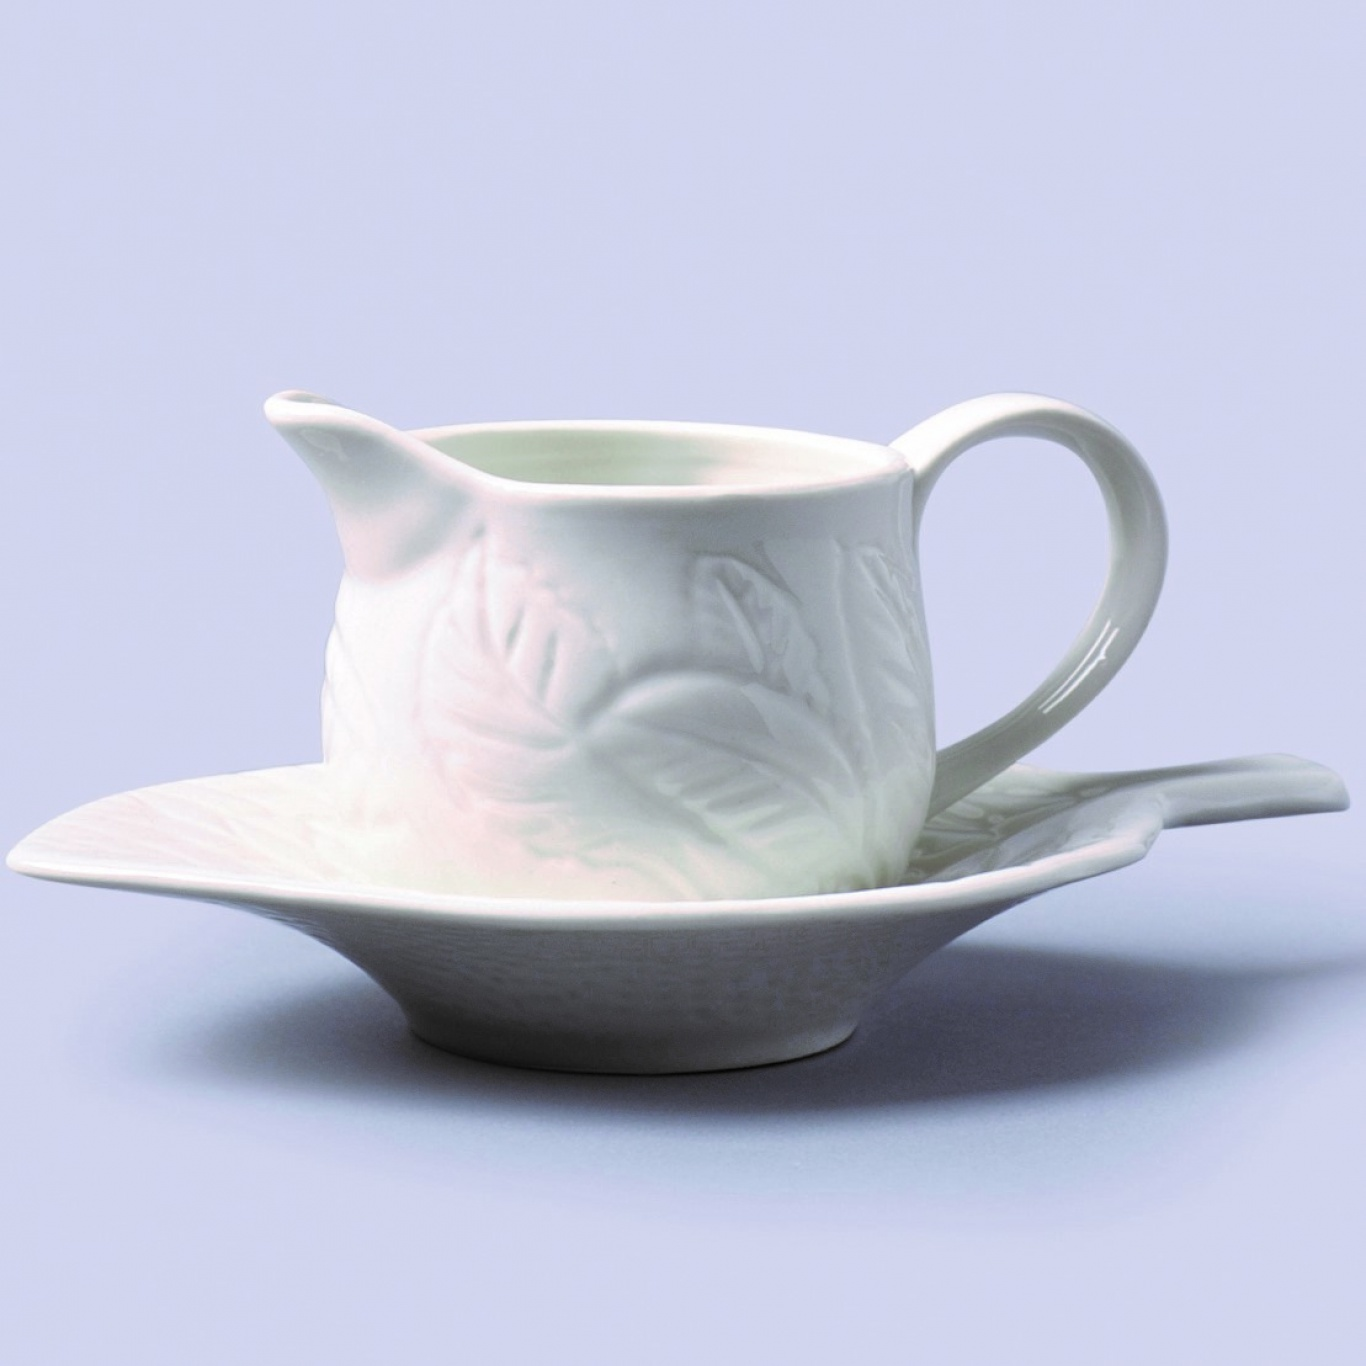 Image of Mint Sauce Boat/Jug with Stand 150ml